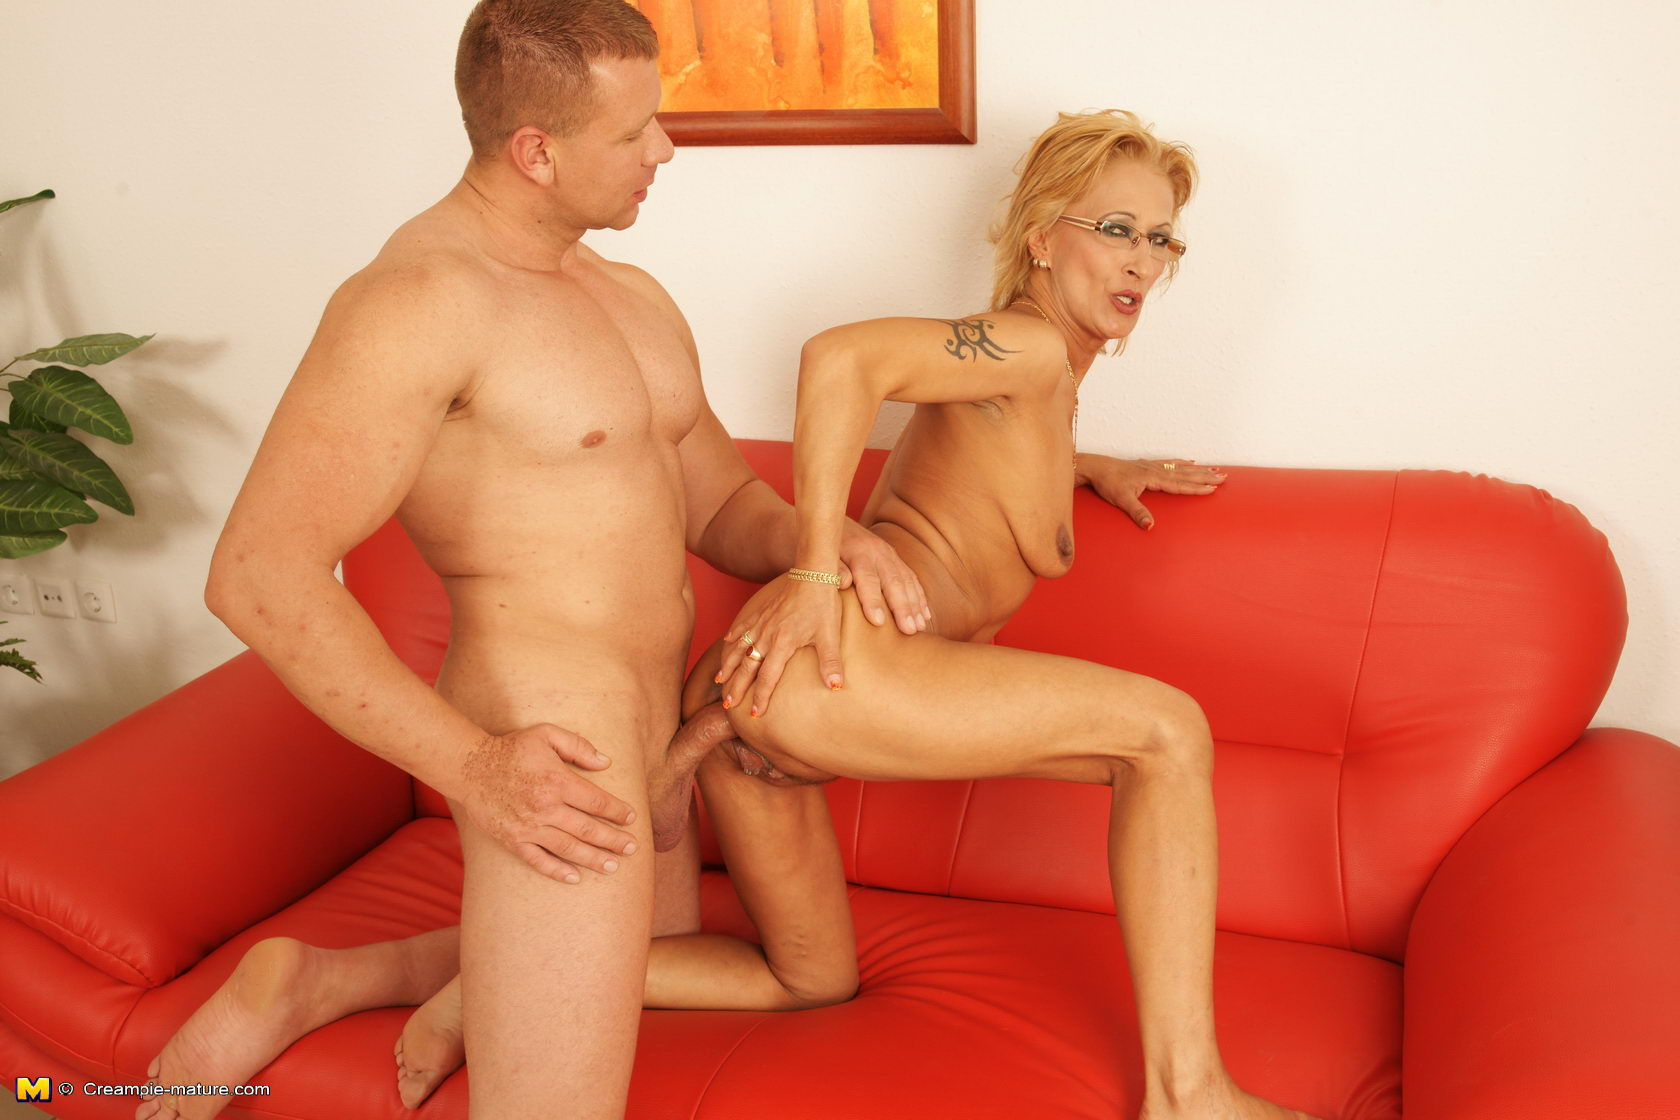 image Love creampie beautiful blonde didnt say he could cum inside